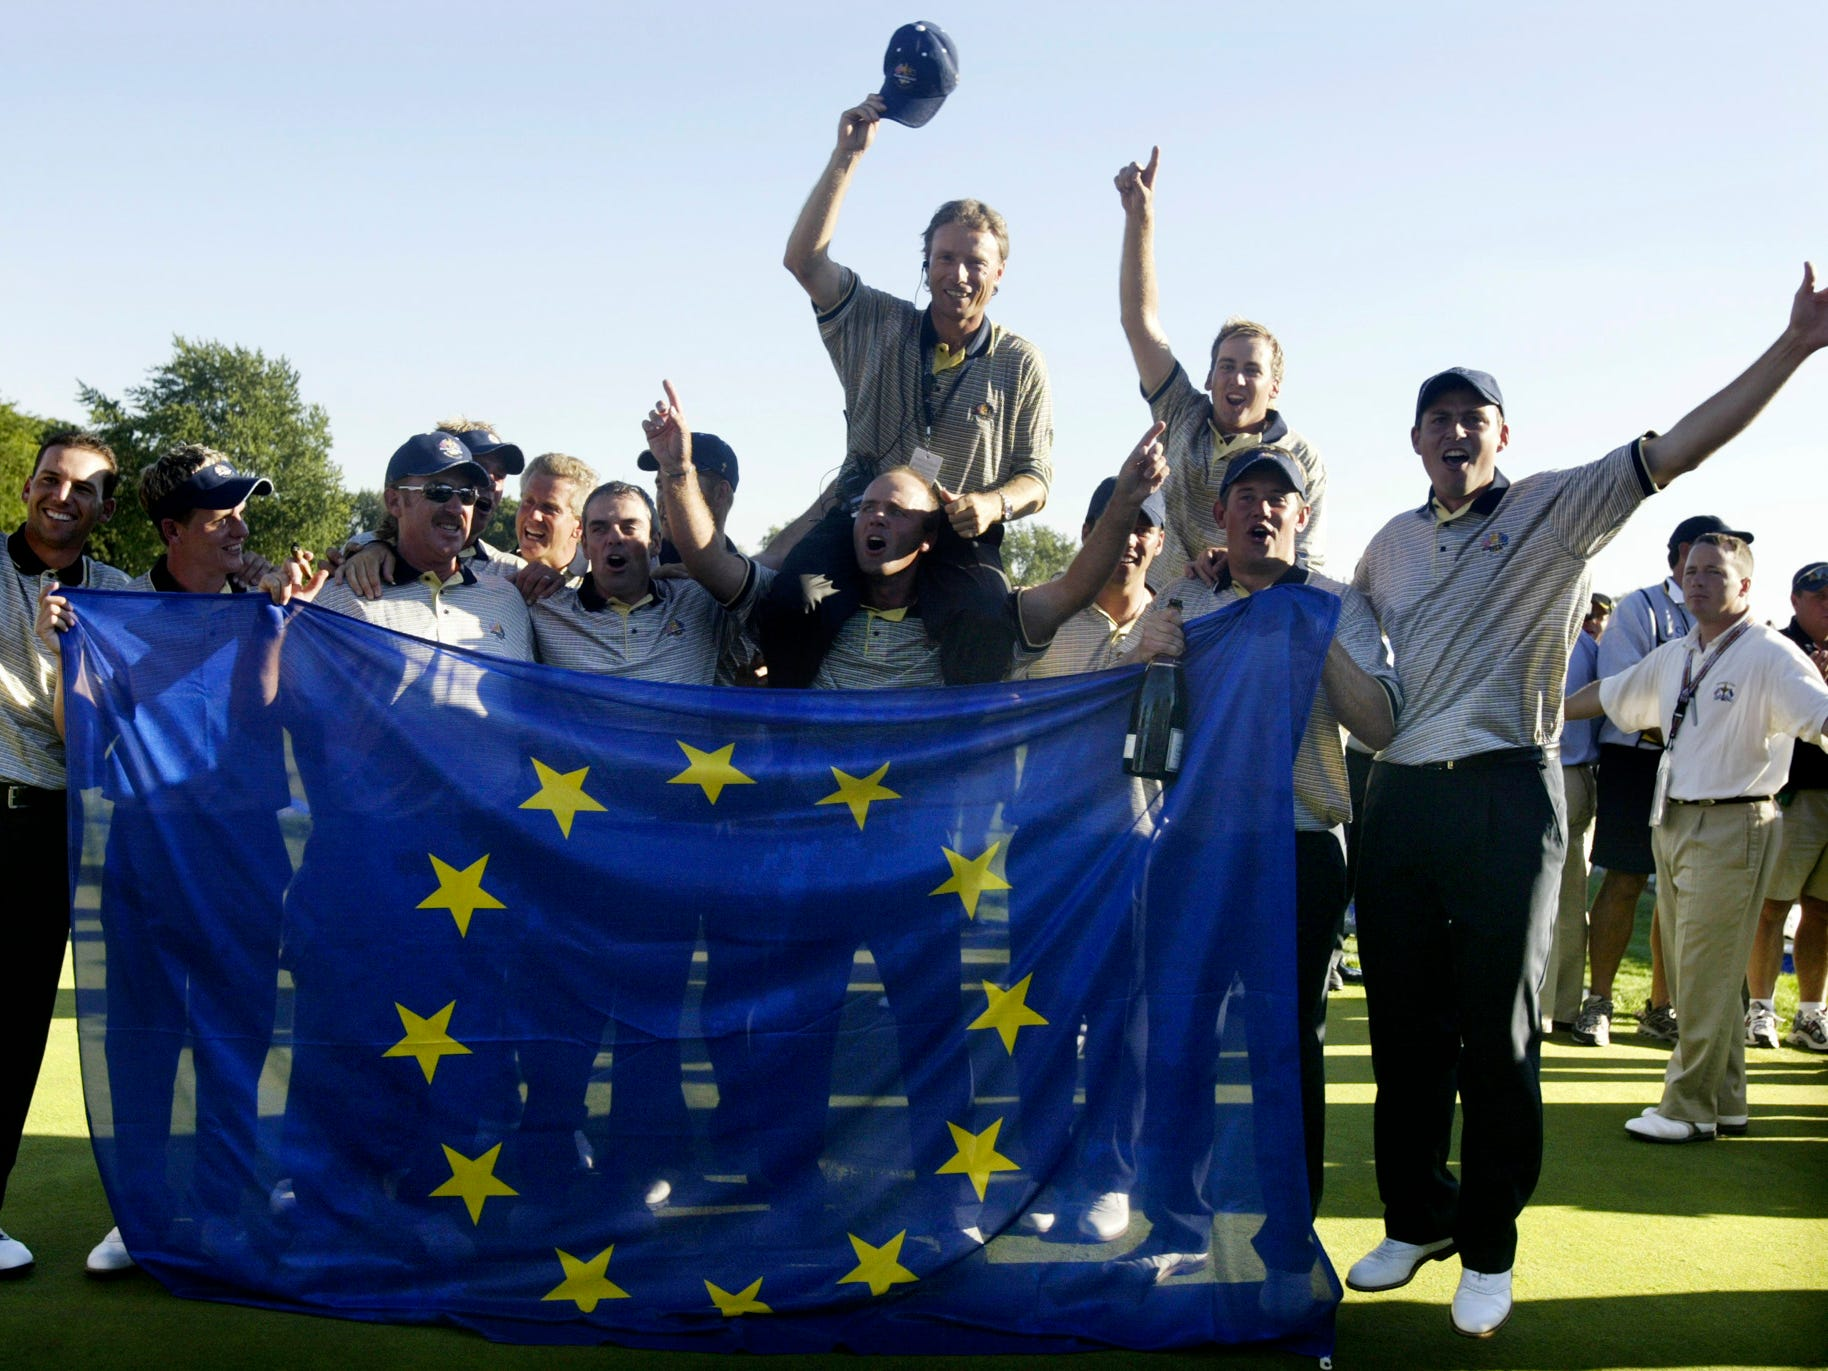 Team Europe, 2004: The European team celebrates after their 18.5-9.5 victory over the United States to retain the Ryder Cup